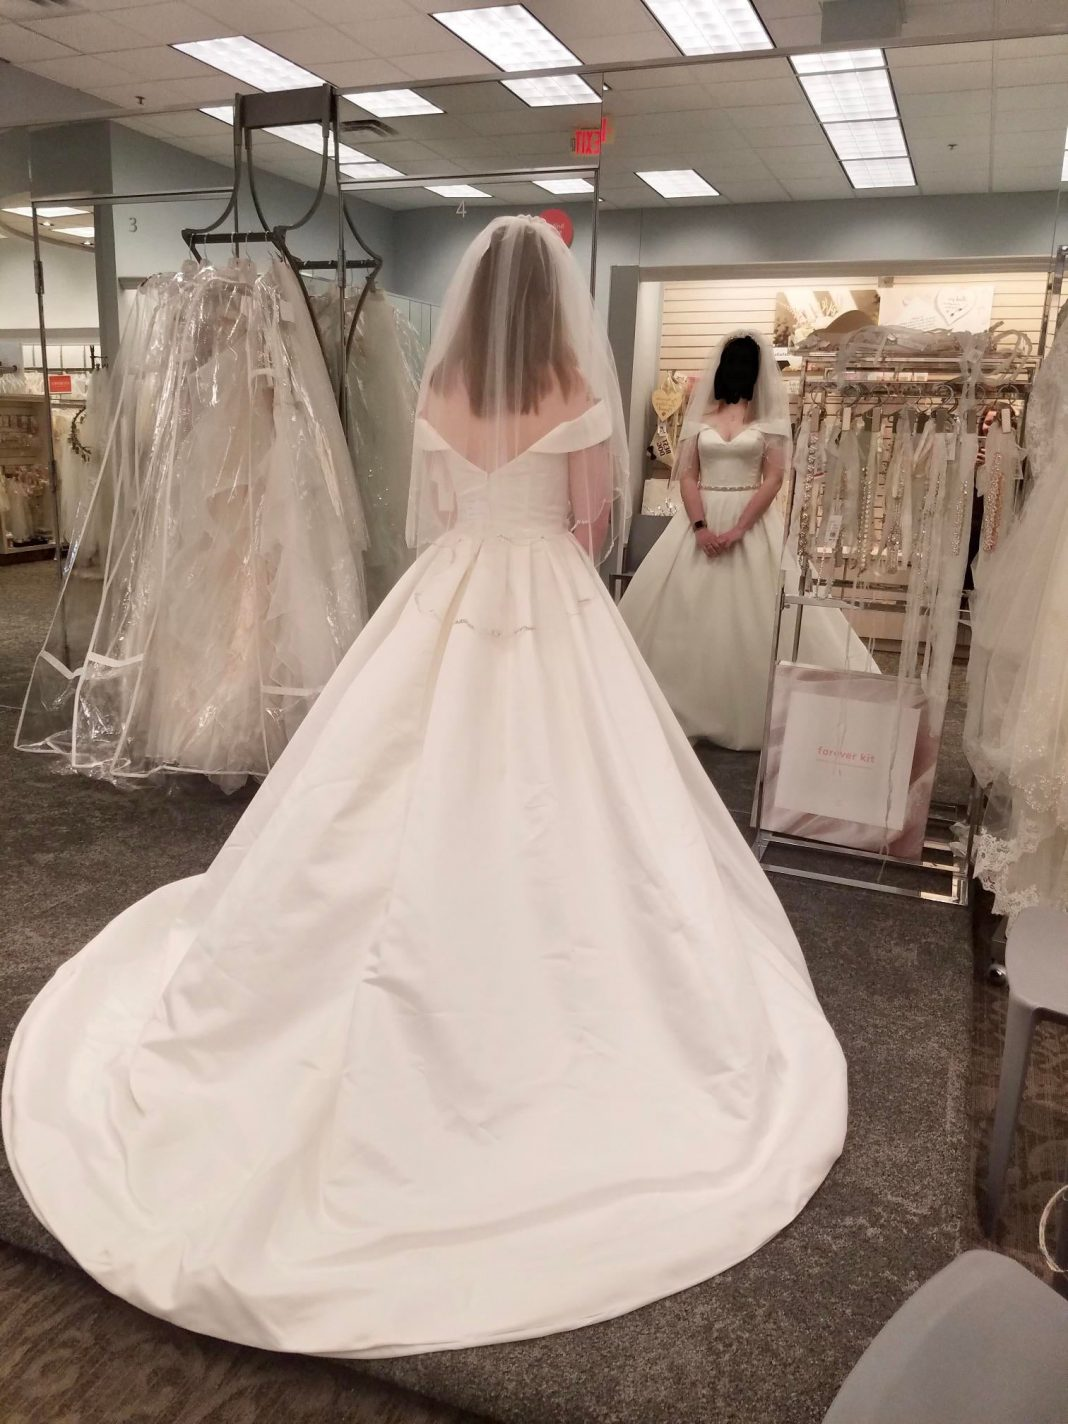 I said yes to the dress this past weekend! I feel like a Disney Princess!